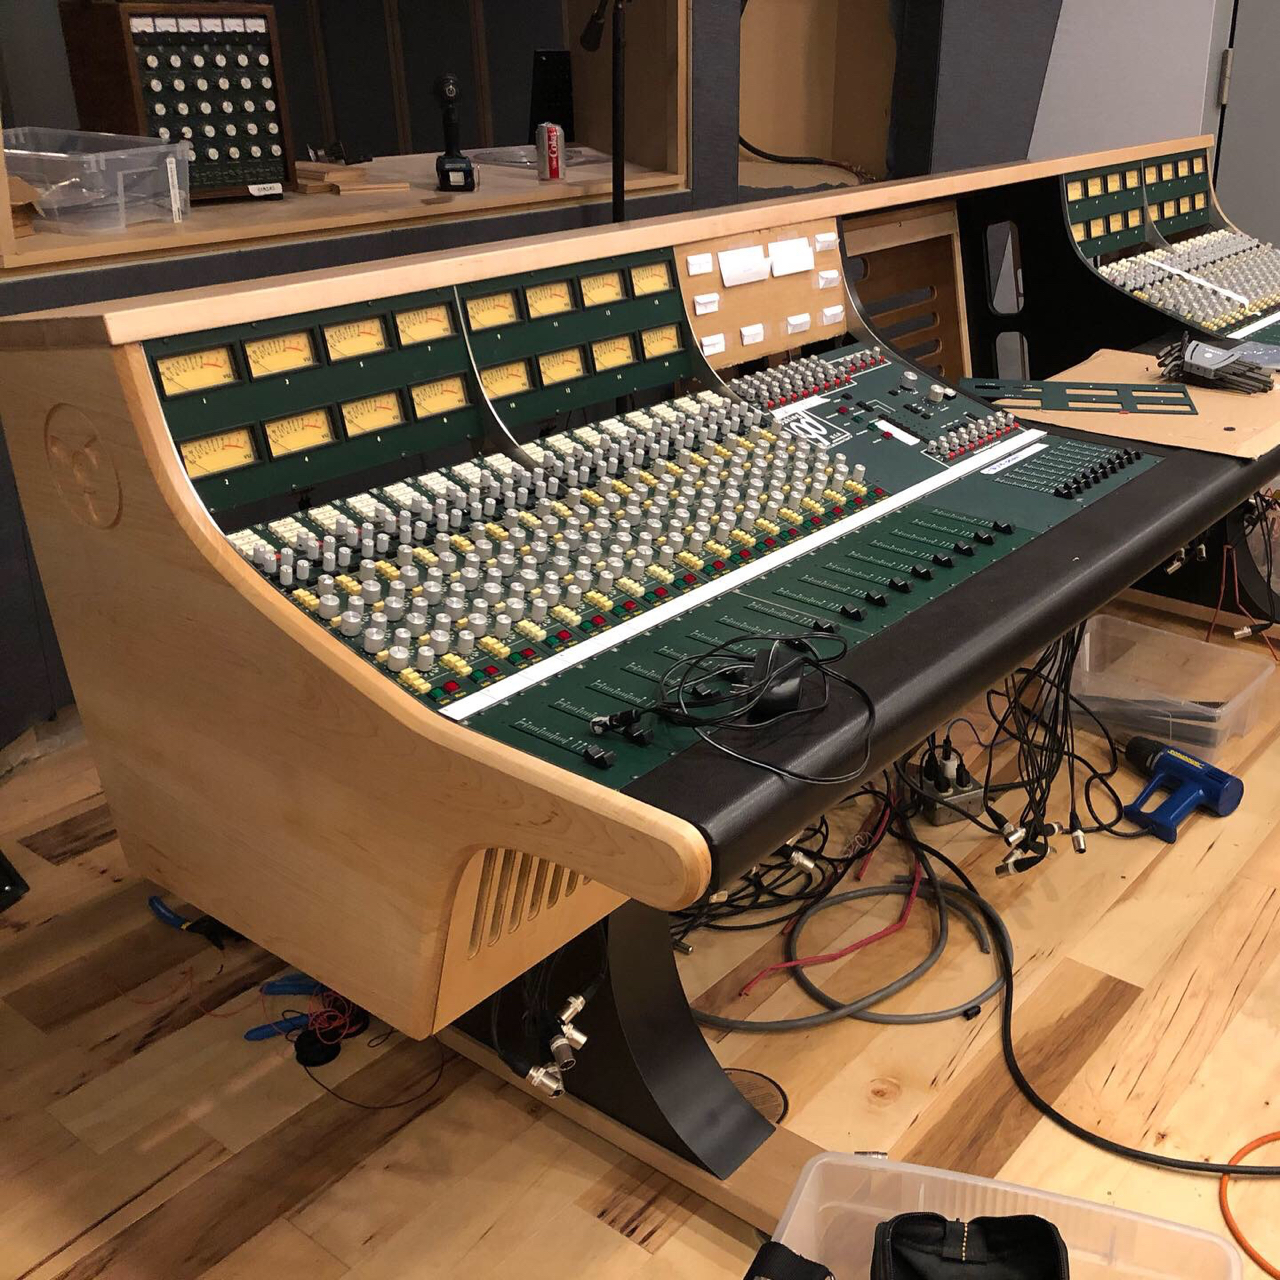 The Daking is such a great sounding console, but its former frame and trim left something to be desired. Brett Acoustics did an amazing job with the new desk.